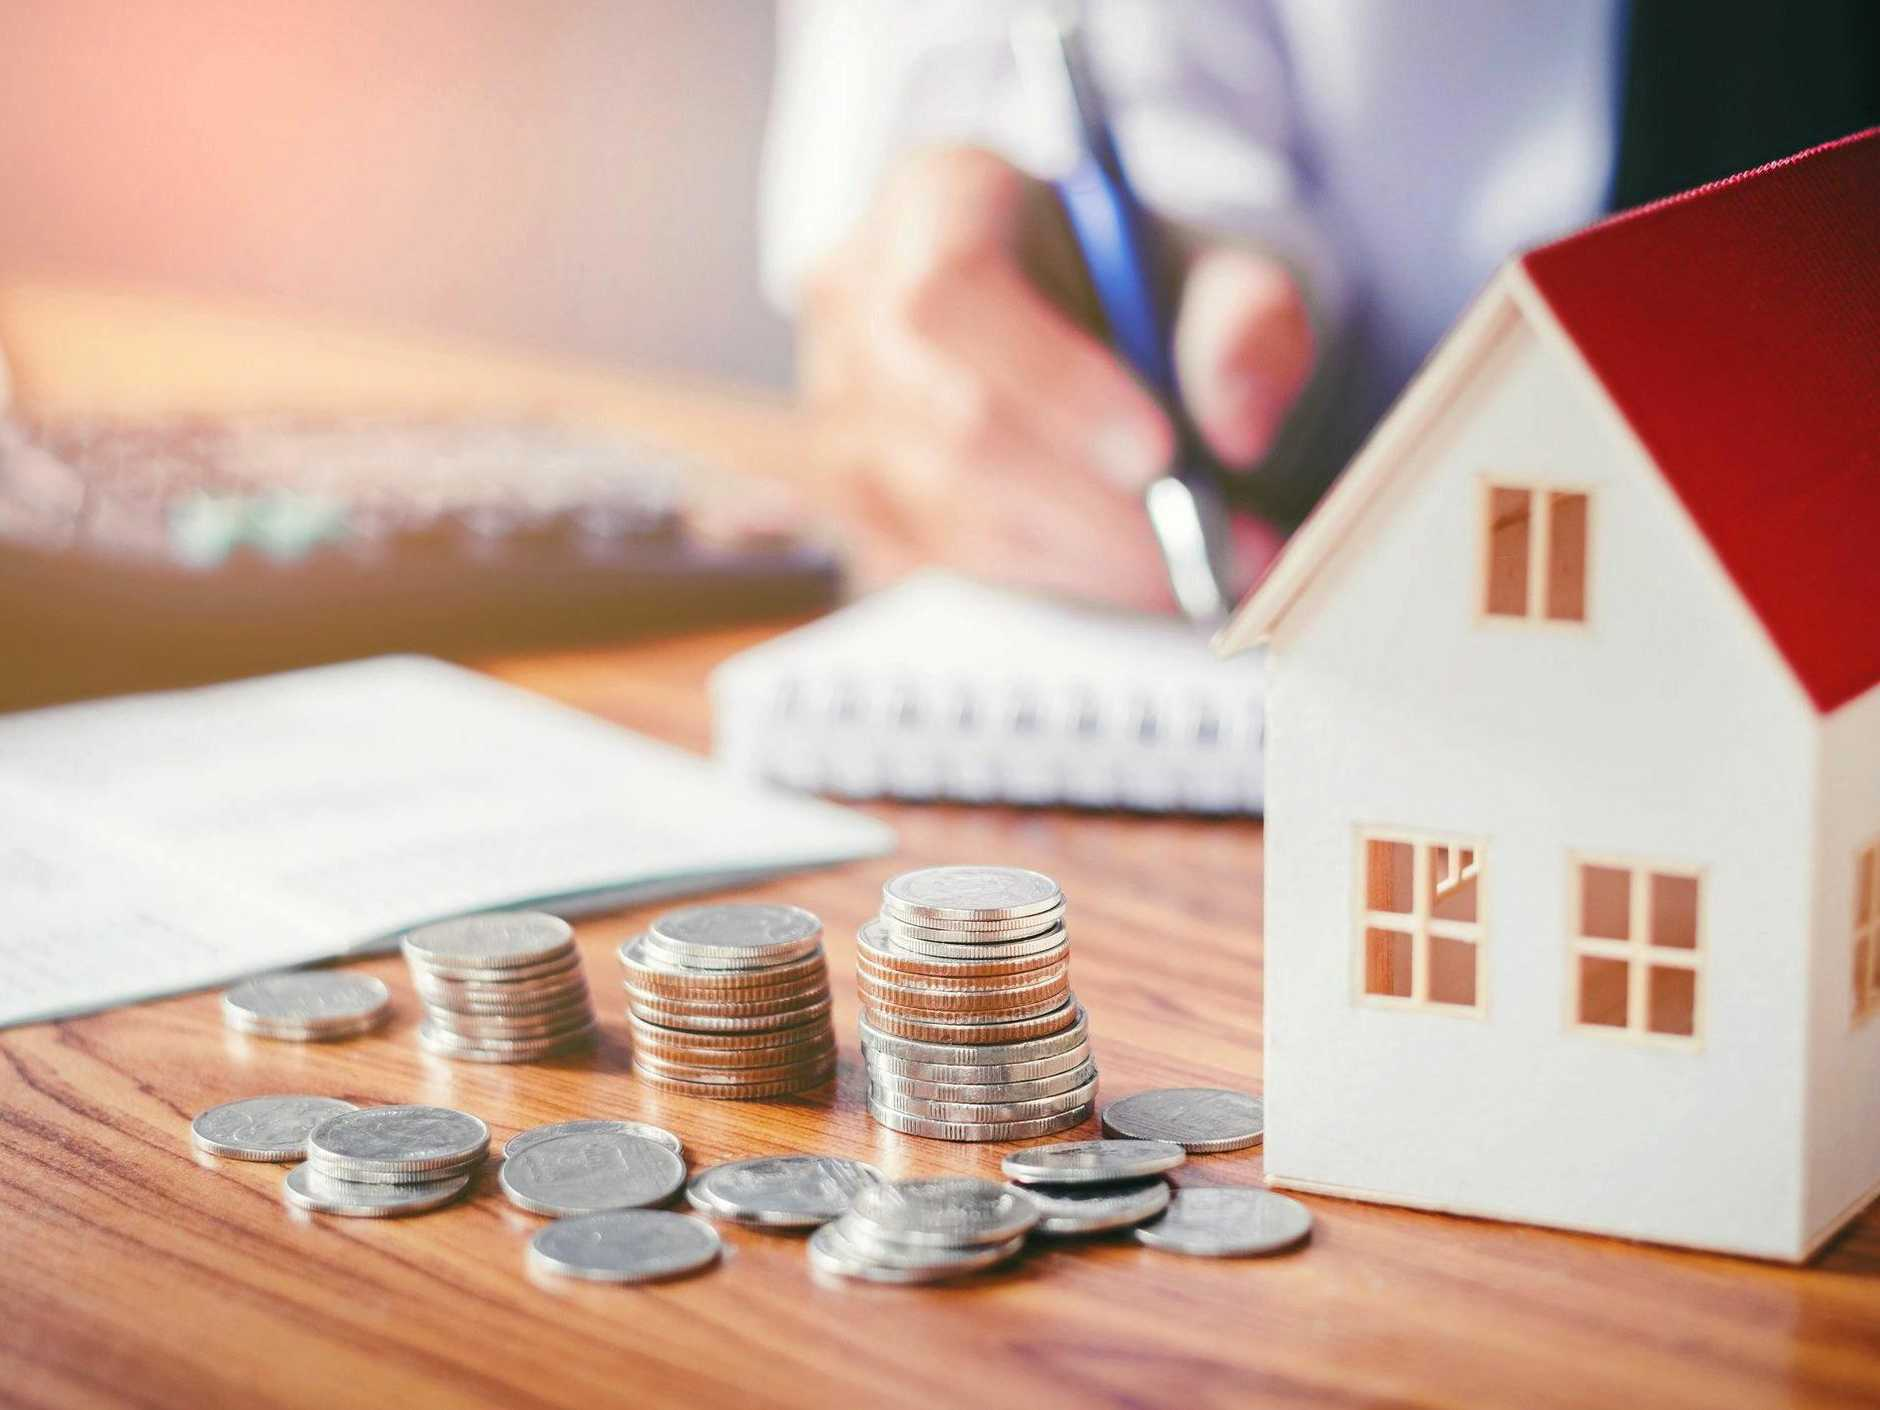 Finance experts say that, based on an average 30-year home loan of $371,100, households could save $5412 a year in repayments with a few simple steps.